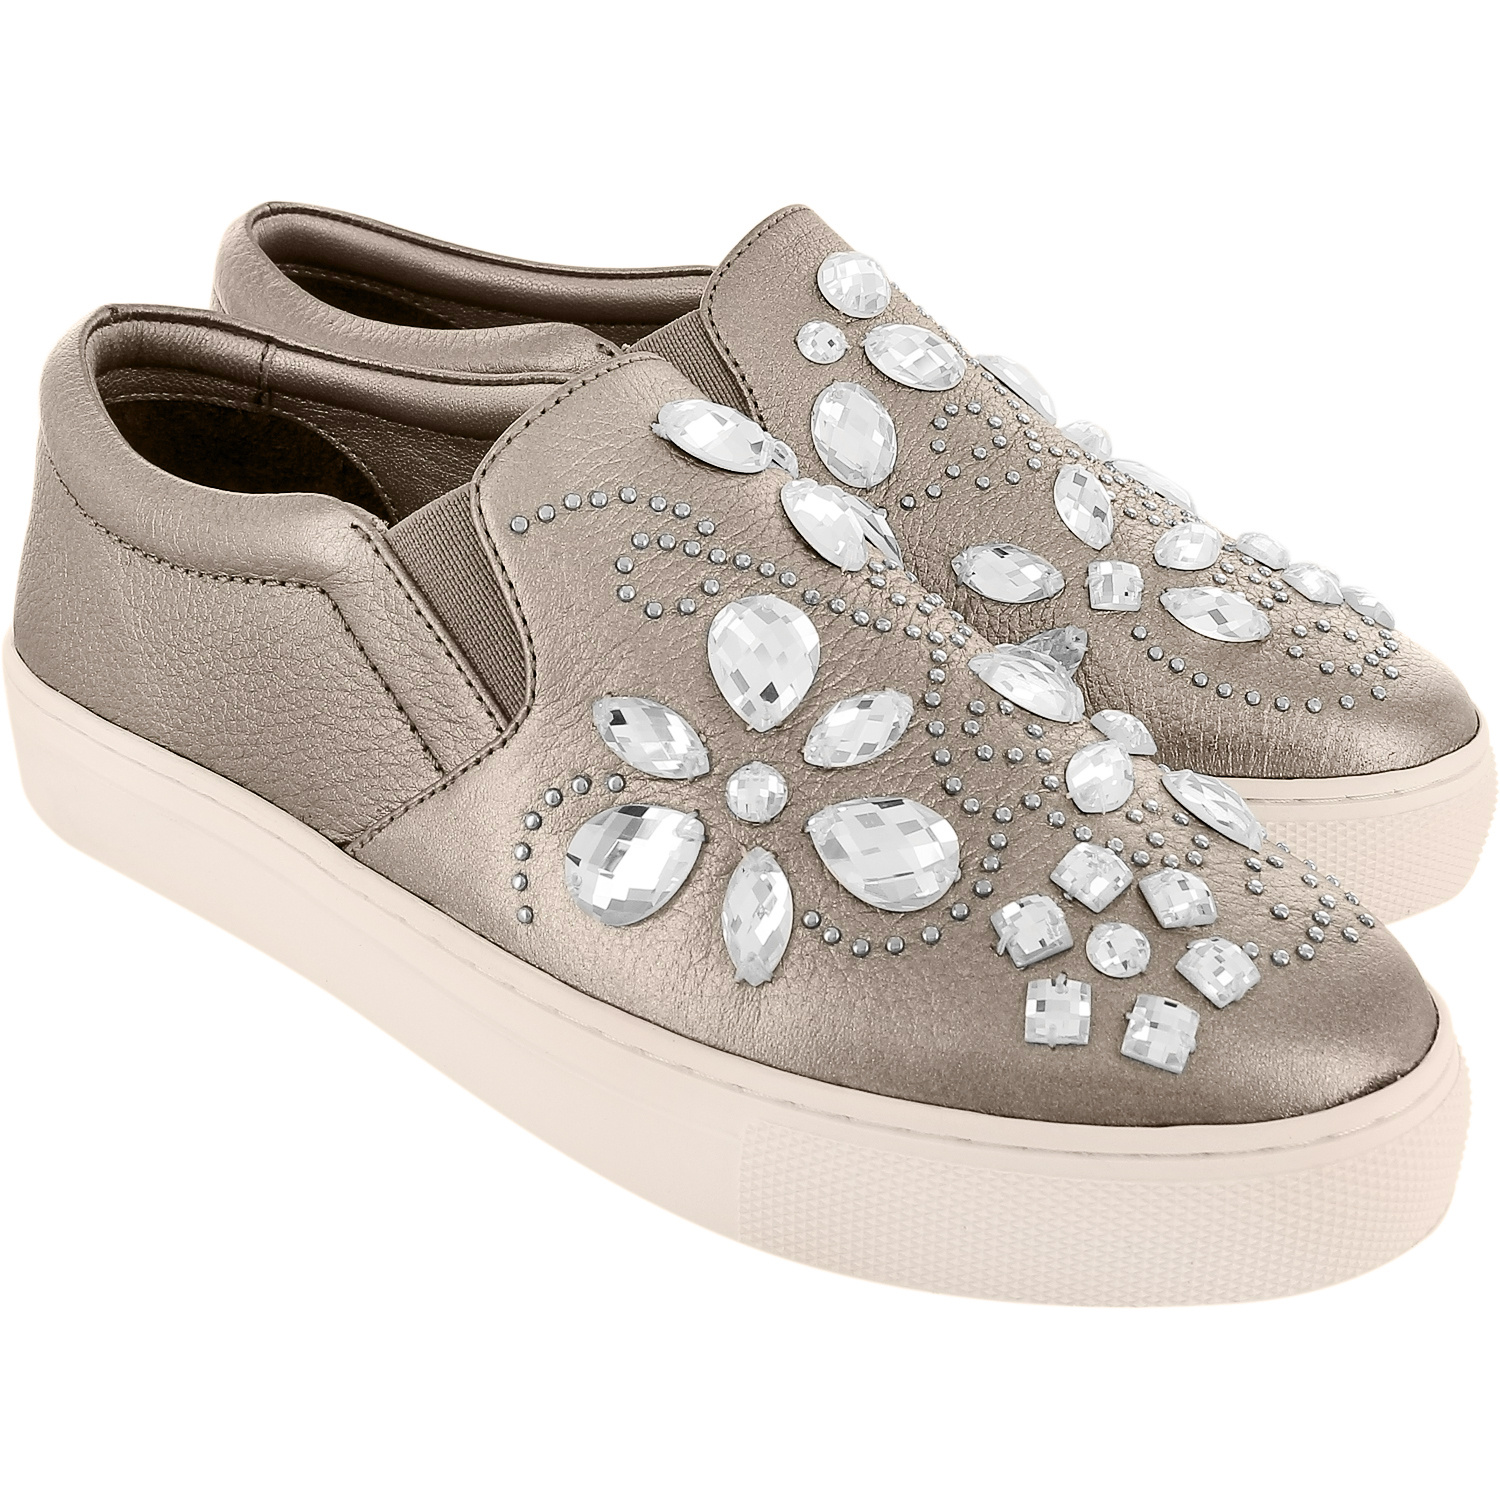 Bling Sneakers Flats